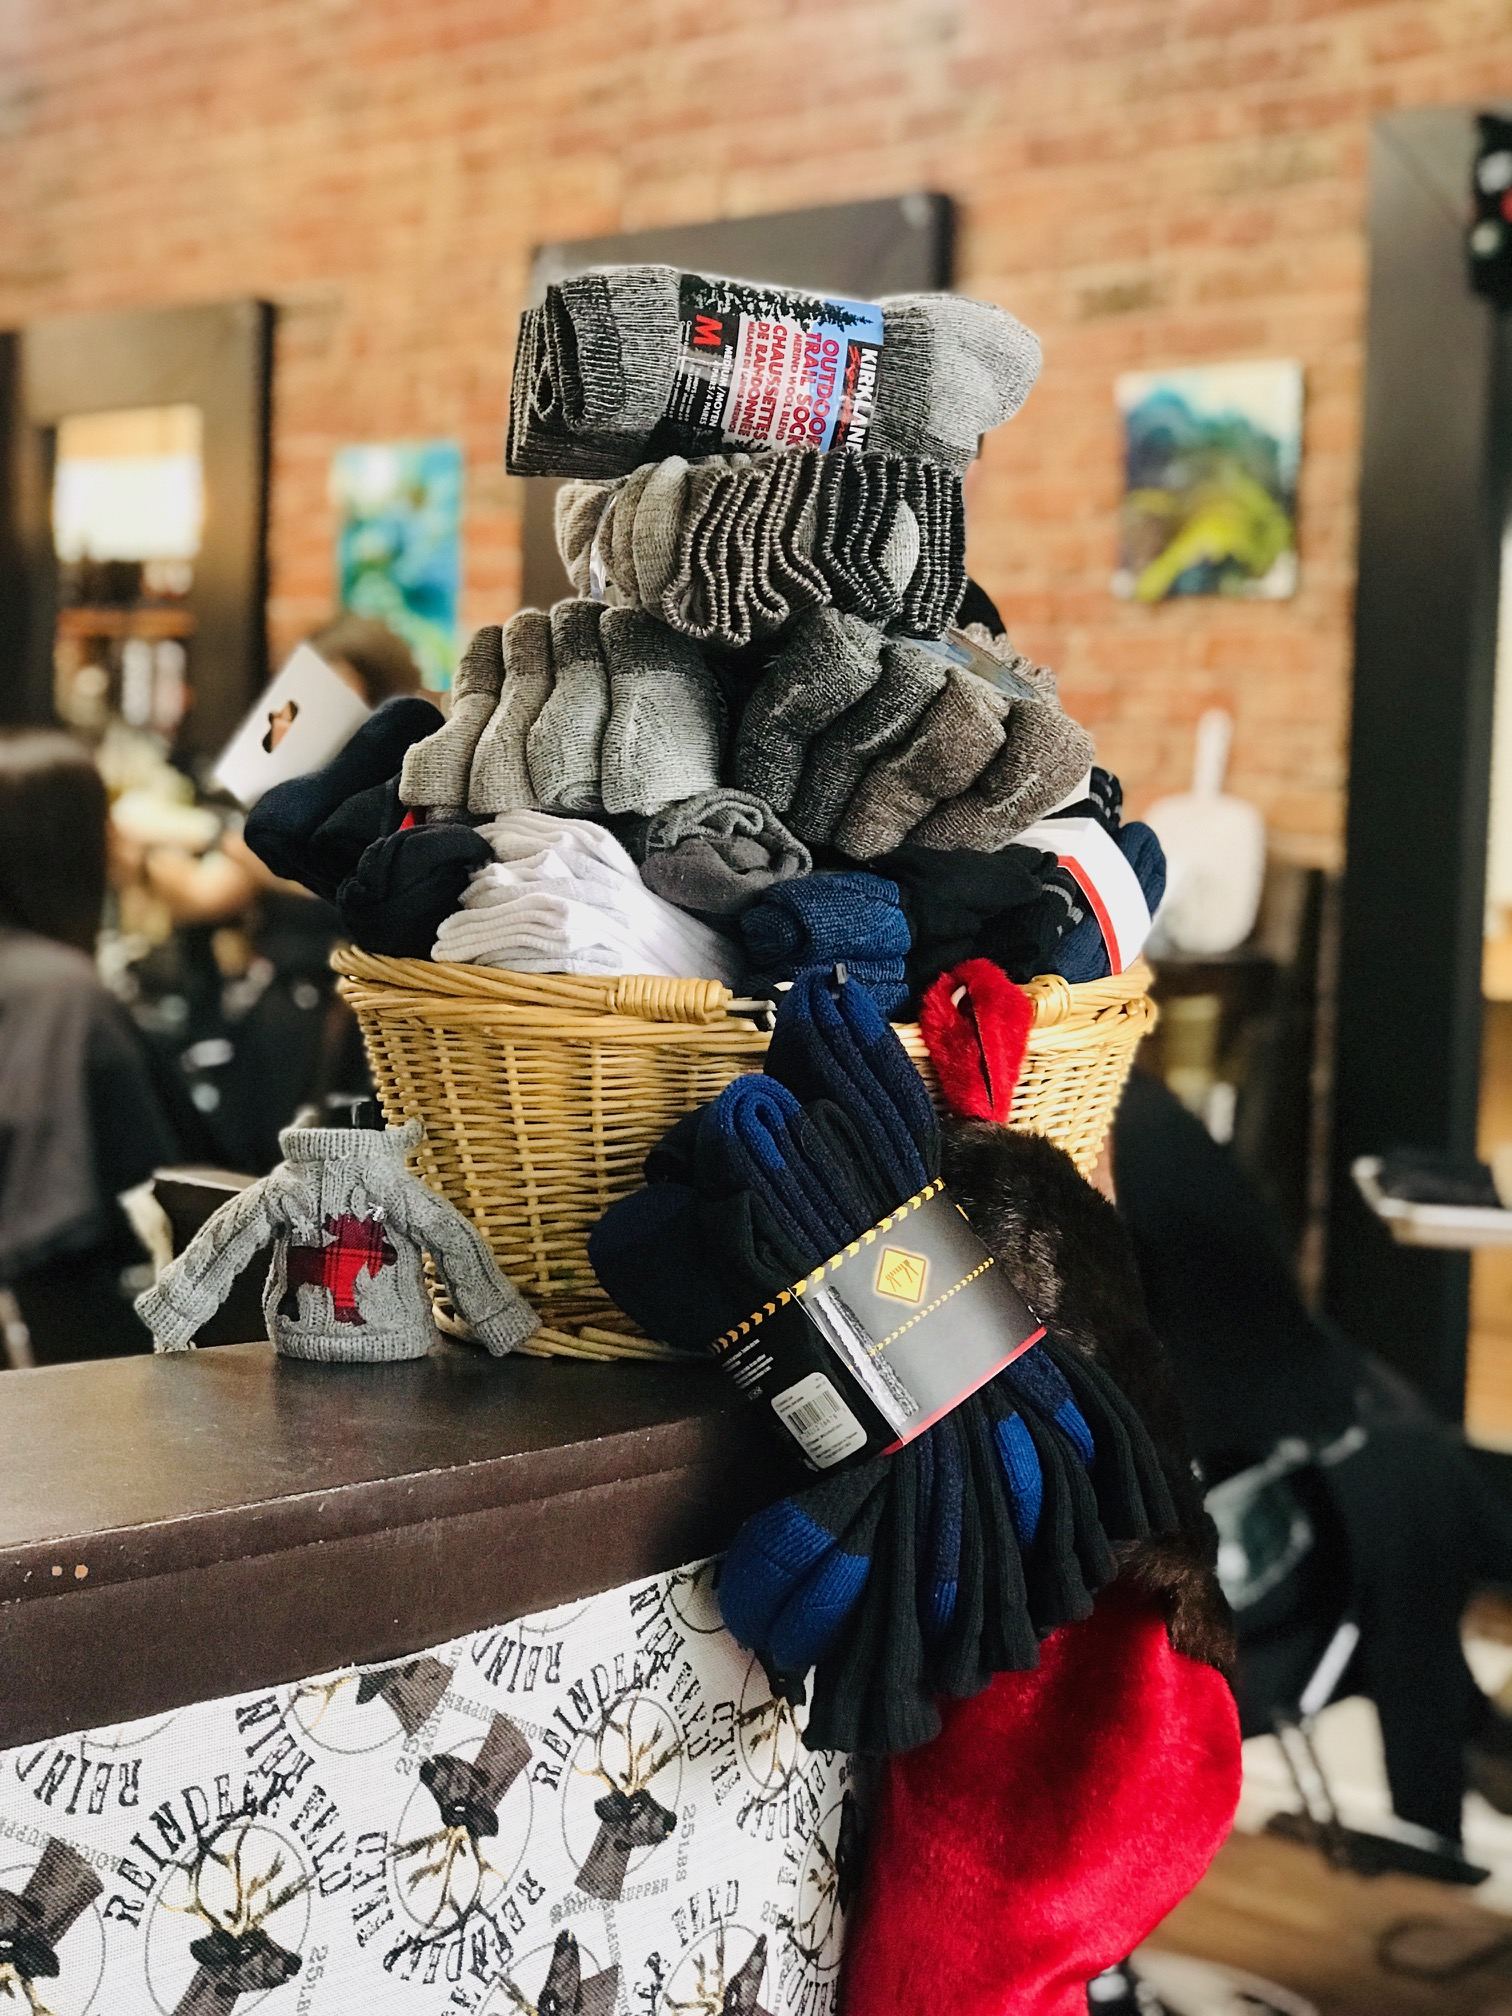 Sock Drive! - We are so thankful to all of our clients who have been bringing in socks for our sock drive! Keep them coming! There is still another week to contribute. On Dec 22 we will bring the socks to a local shelter. Thank's for your support!!